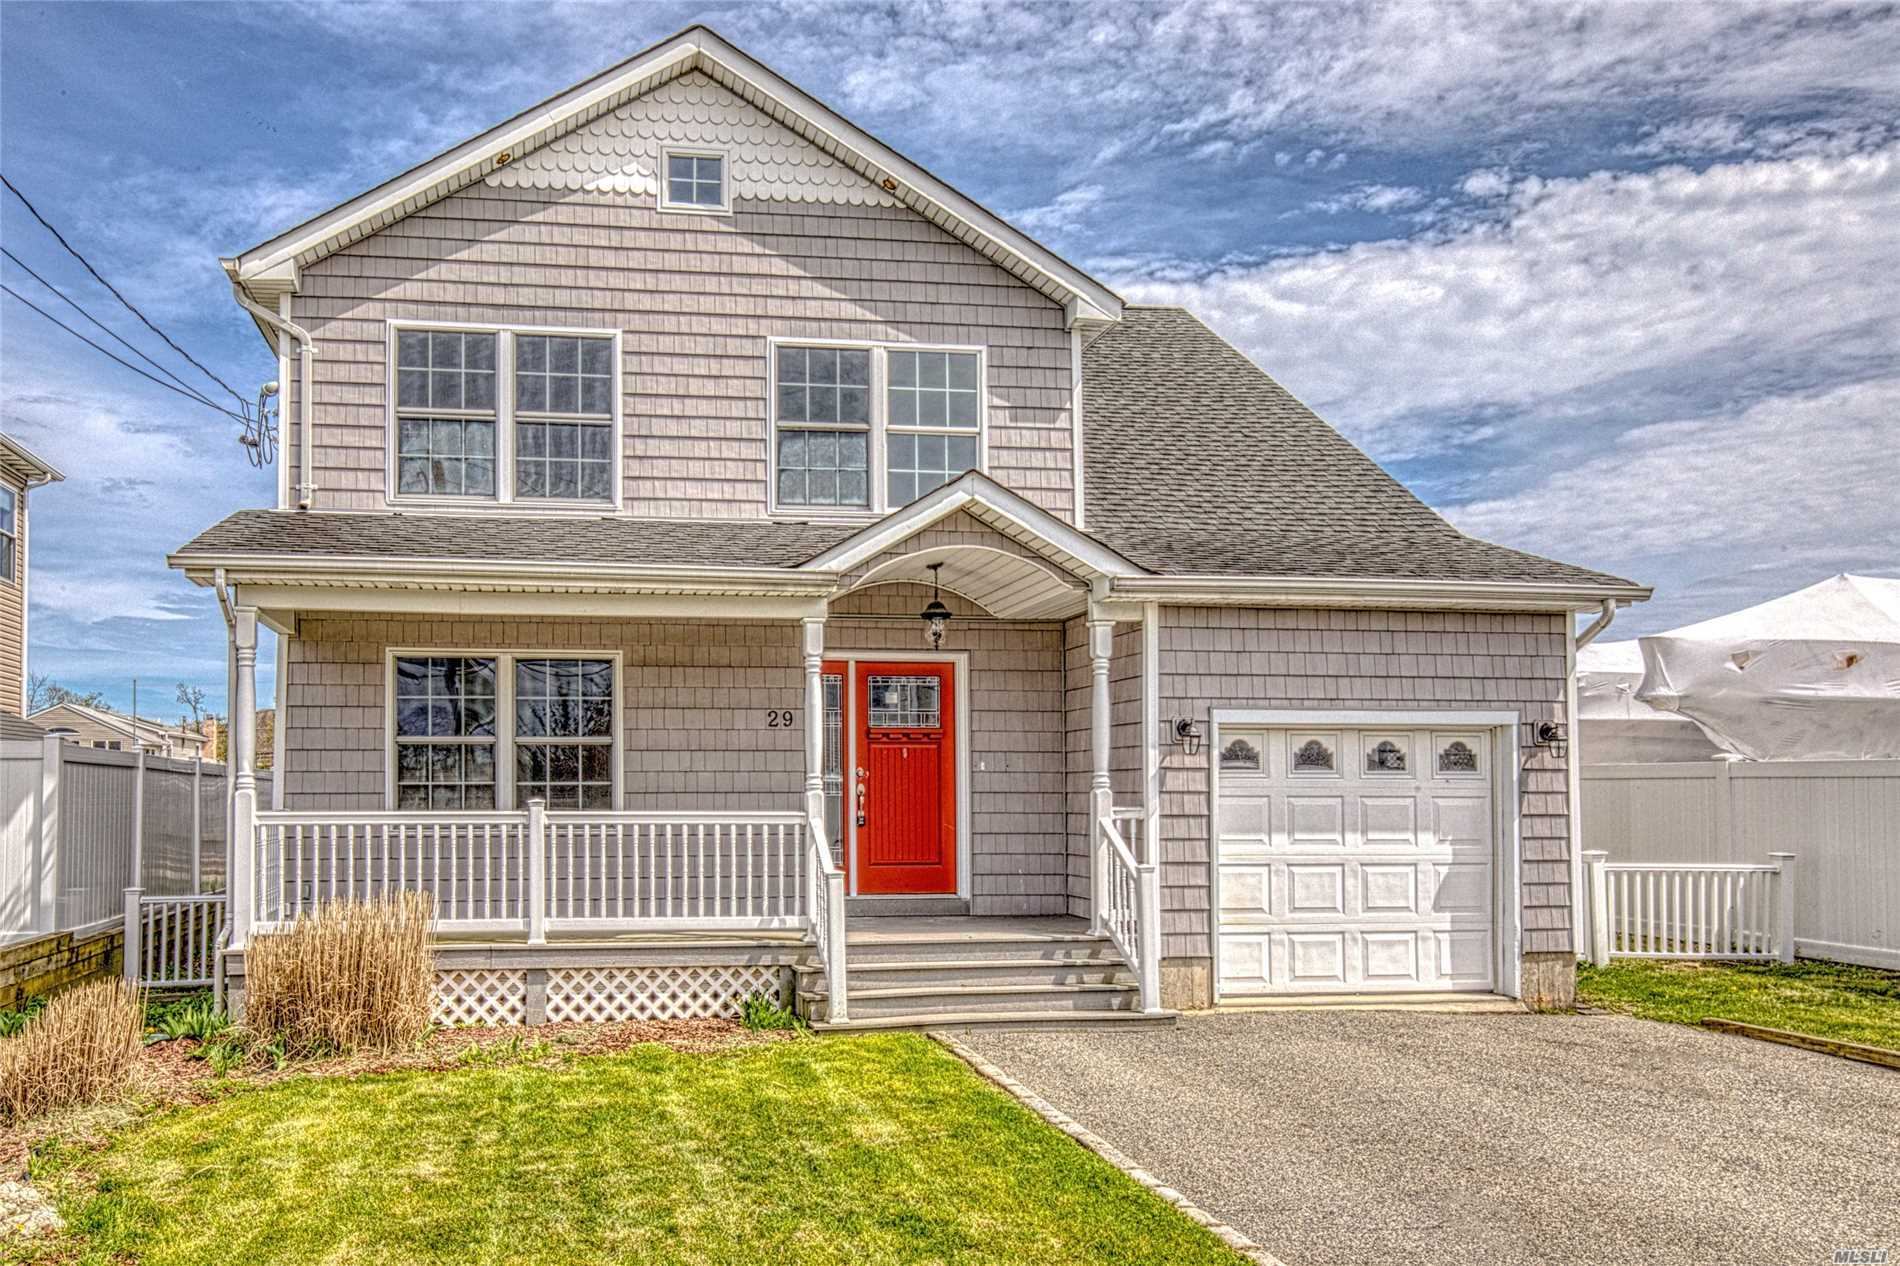 A Boaters Paradise Awaits You in this 4 Bedroom 2.5 Bath Colonial. Located on a Deep Water Canal with Direct Access to the Bay, You Couldn't Ask for More. Sunshine Pours Into the Open Concept Living Area with Beautiful Views of the Canal. Sit Out on Your Deck or Enjoy the Firepit on those Warm Summer Nights. Newly Renovated Kitchen and Baths Make This Home Move In Ready. Just Bring Your Boat and Get Ready to Enjoy Long Island as it is Meant to Be Enjoyed. Taxes are Grievable!